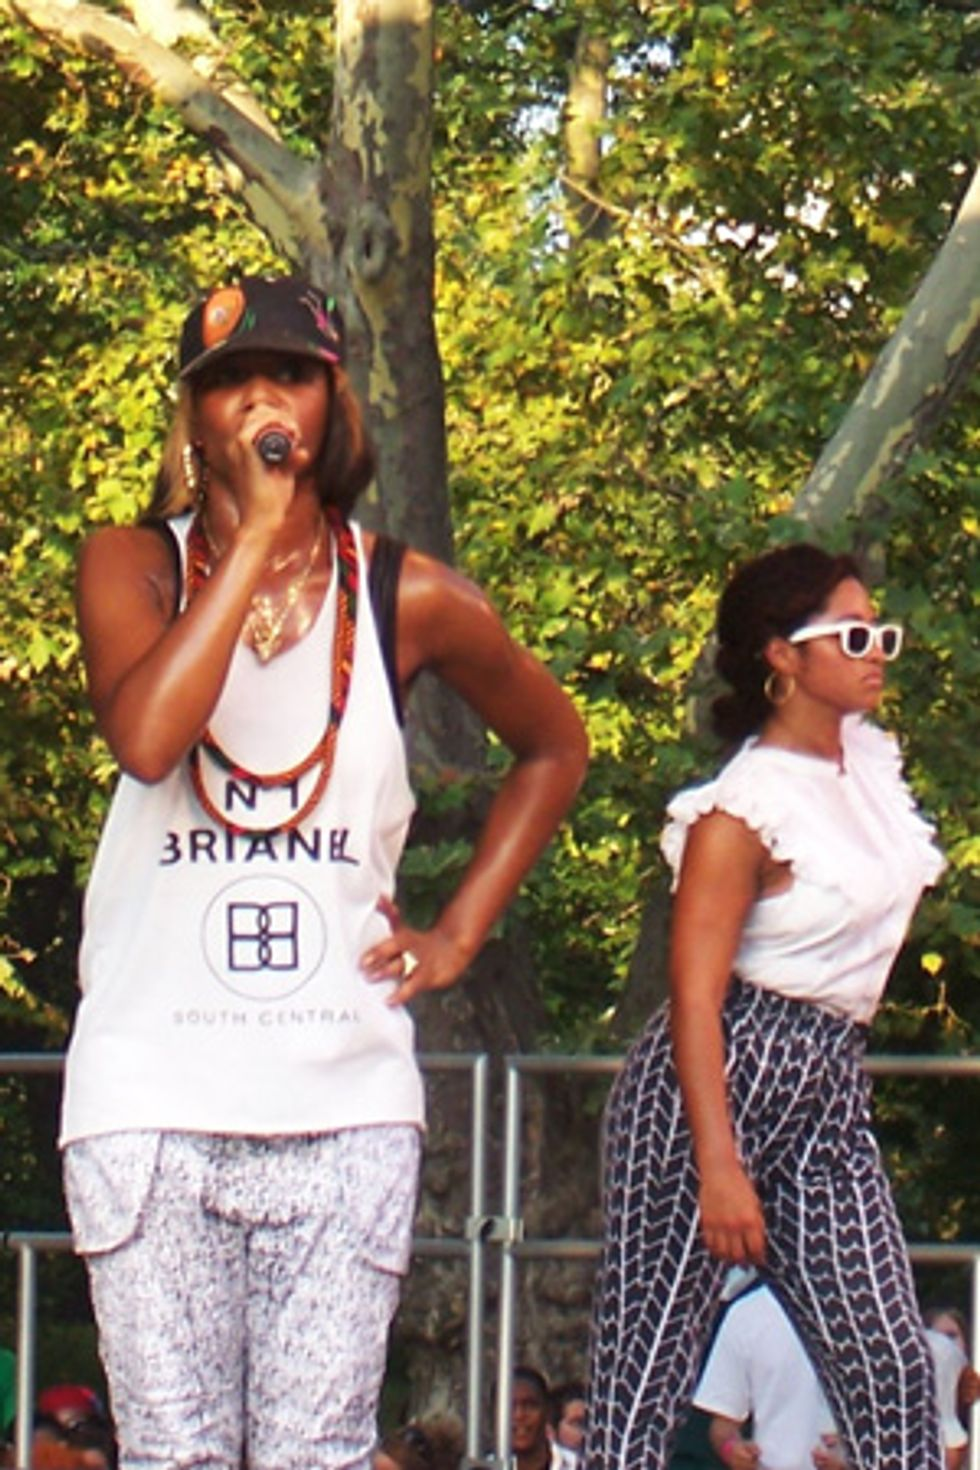 Santogold Brings the Heat in Central Park